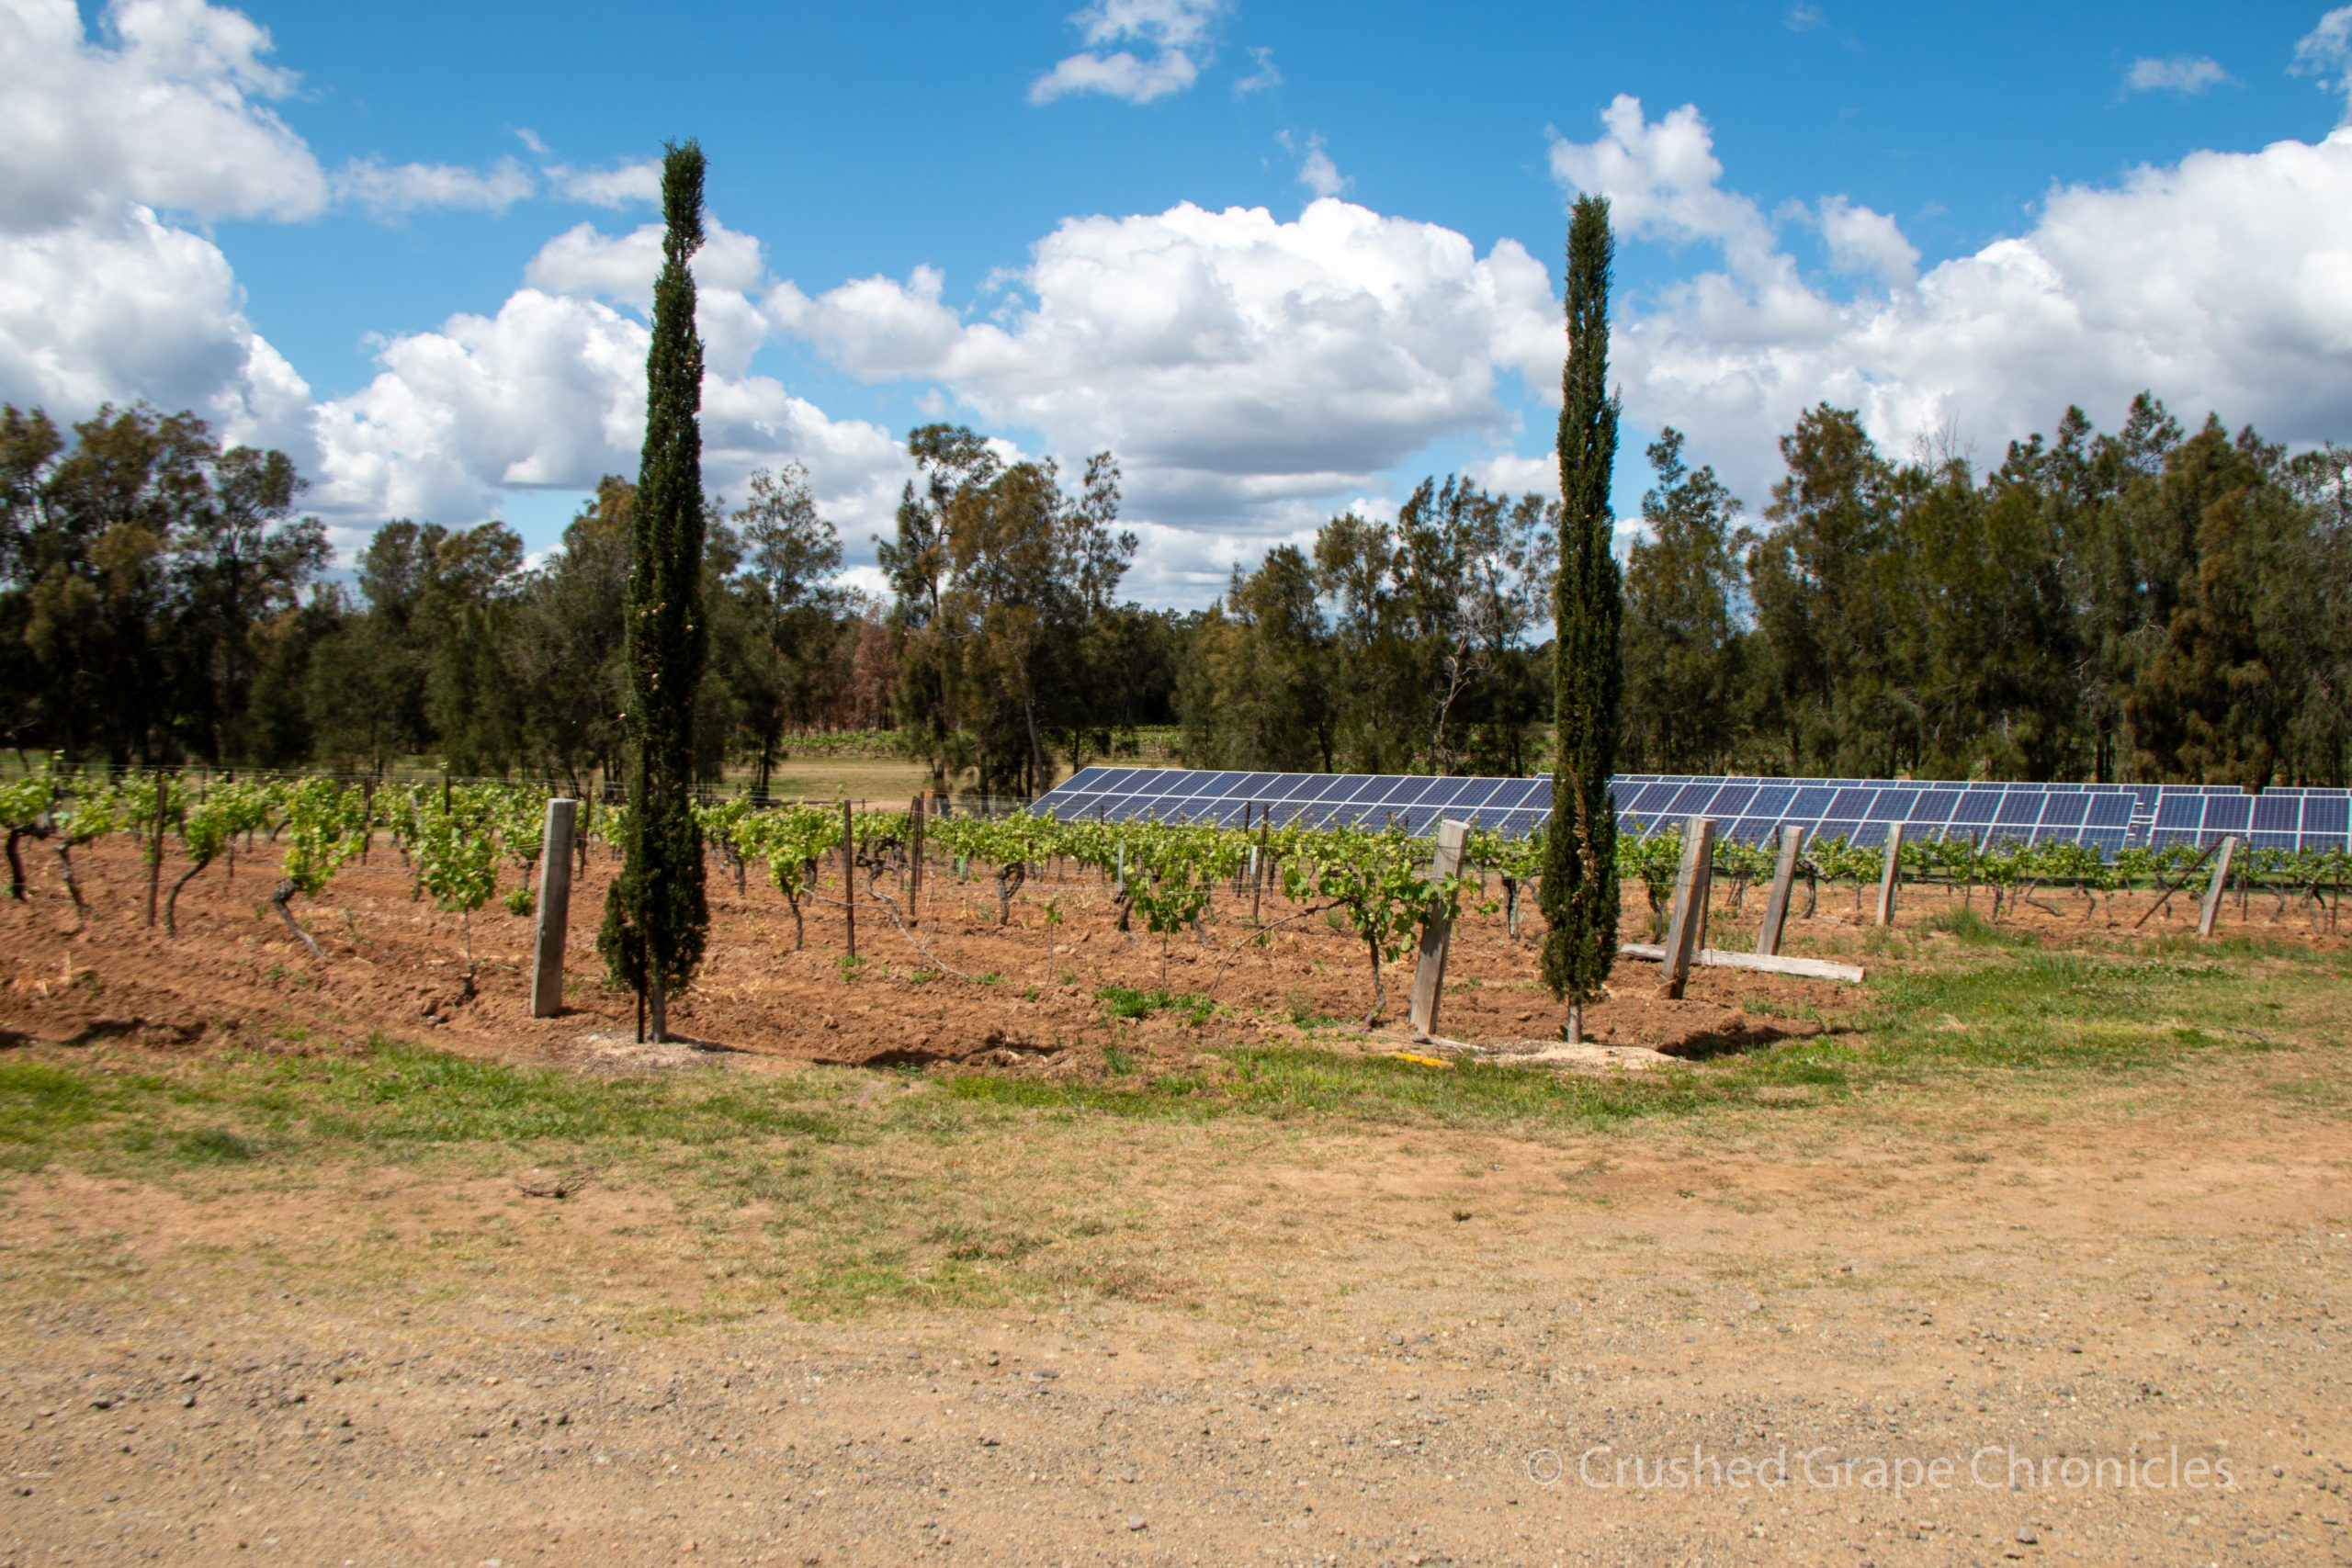 Keith Tulloch Wines in Hunter Valley Australia, a carbon neutral winery, solar panels